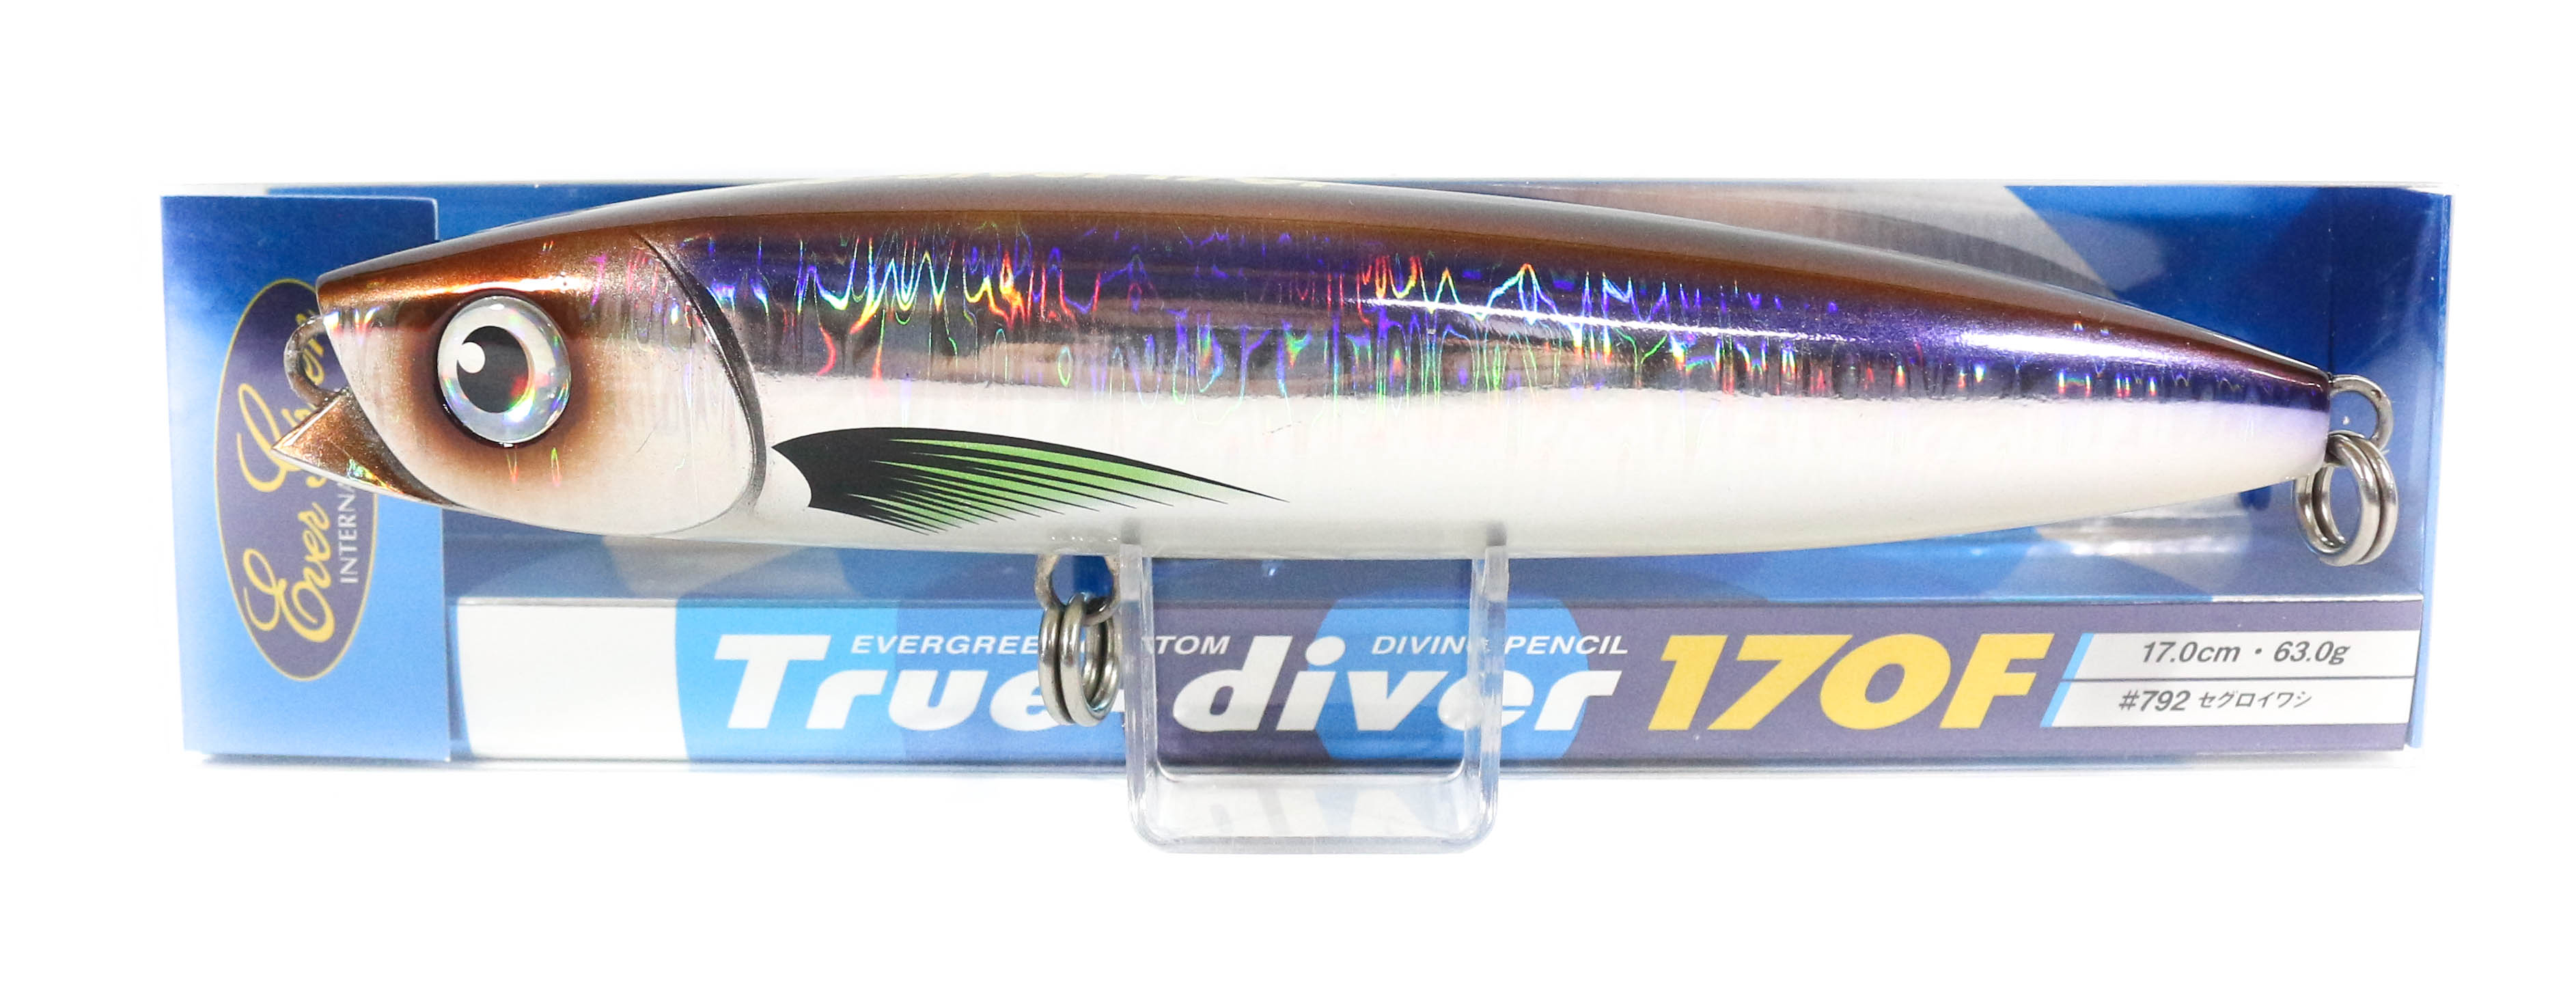 Sale Evergreen True Diver 170F Pencil 63 gram Floating Lure 792 (8214)